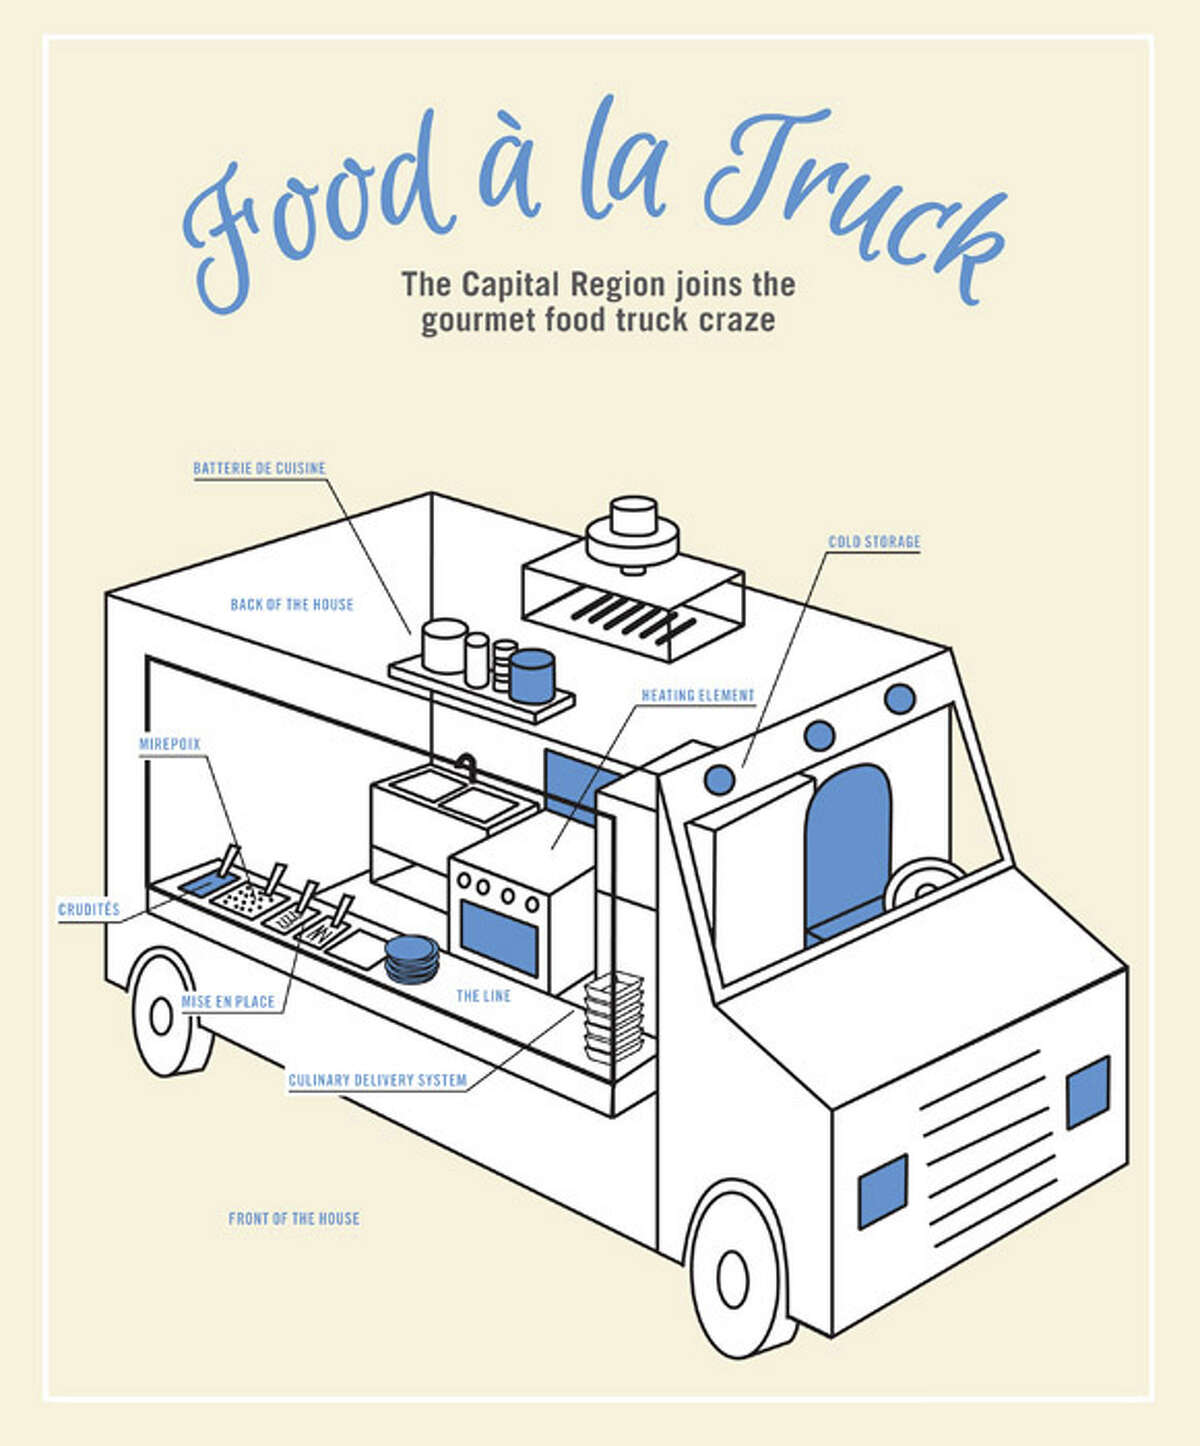 The Capital Region is finally catching up on the trend of gourmet food trucks, which first exploded in West Coast cities in the early 2000s.